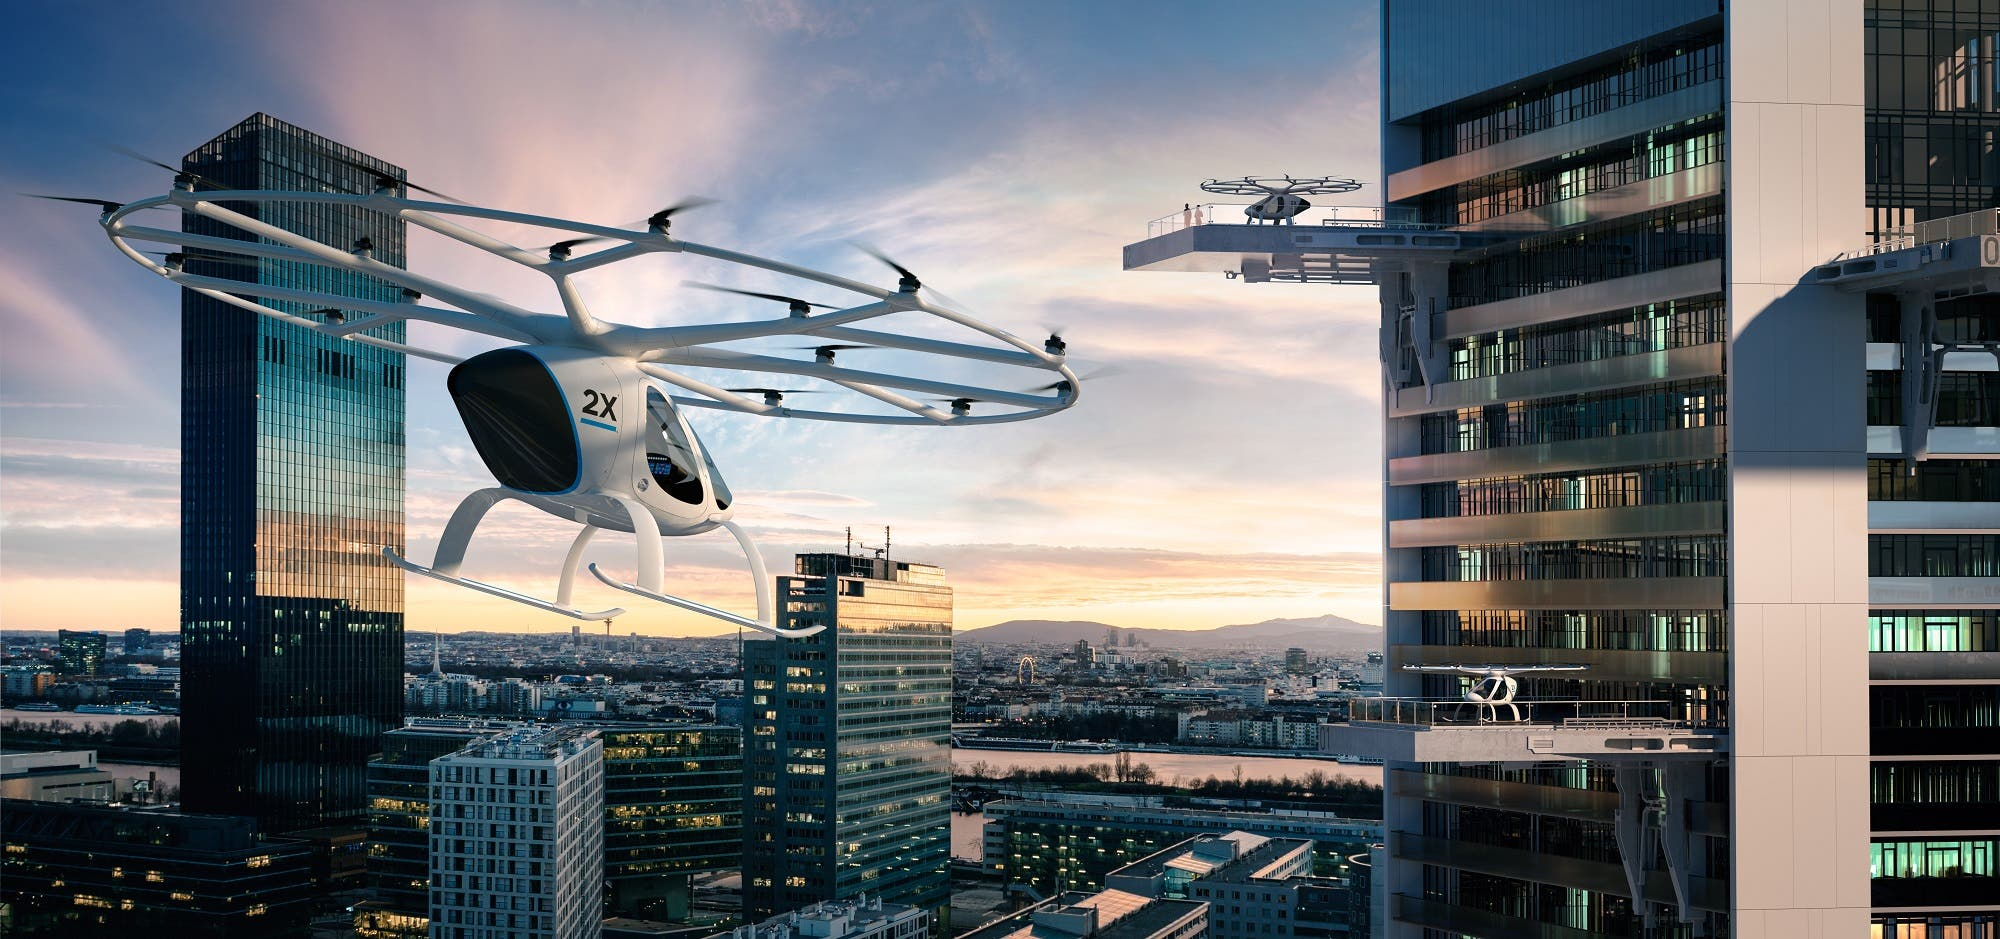 The Volocopter will be power4d by clean electricity. (Courtesy: Volocopter)